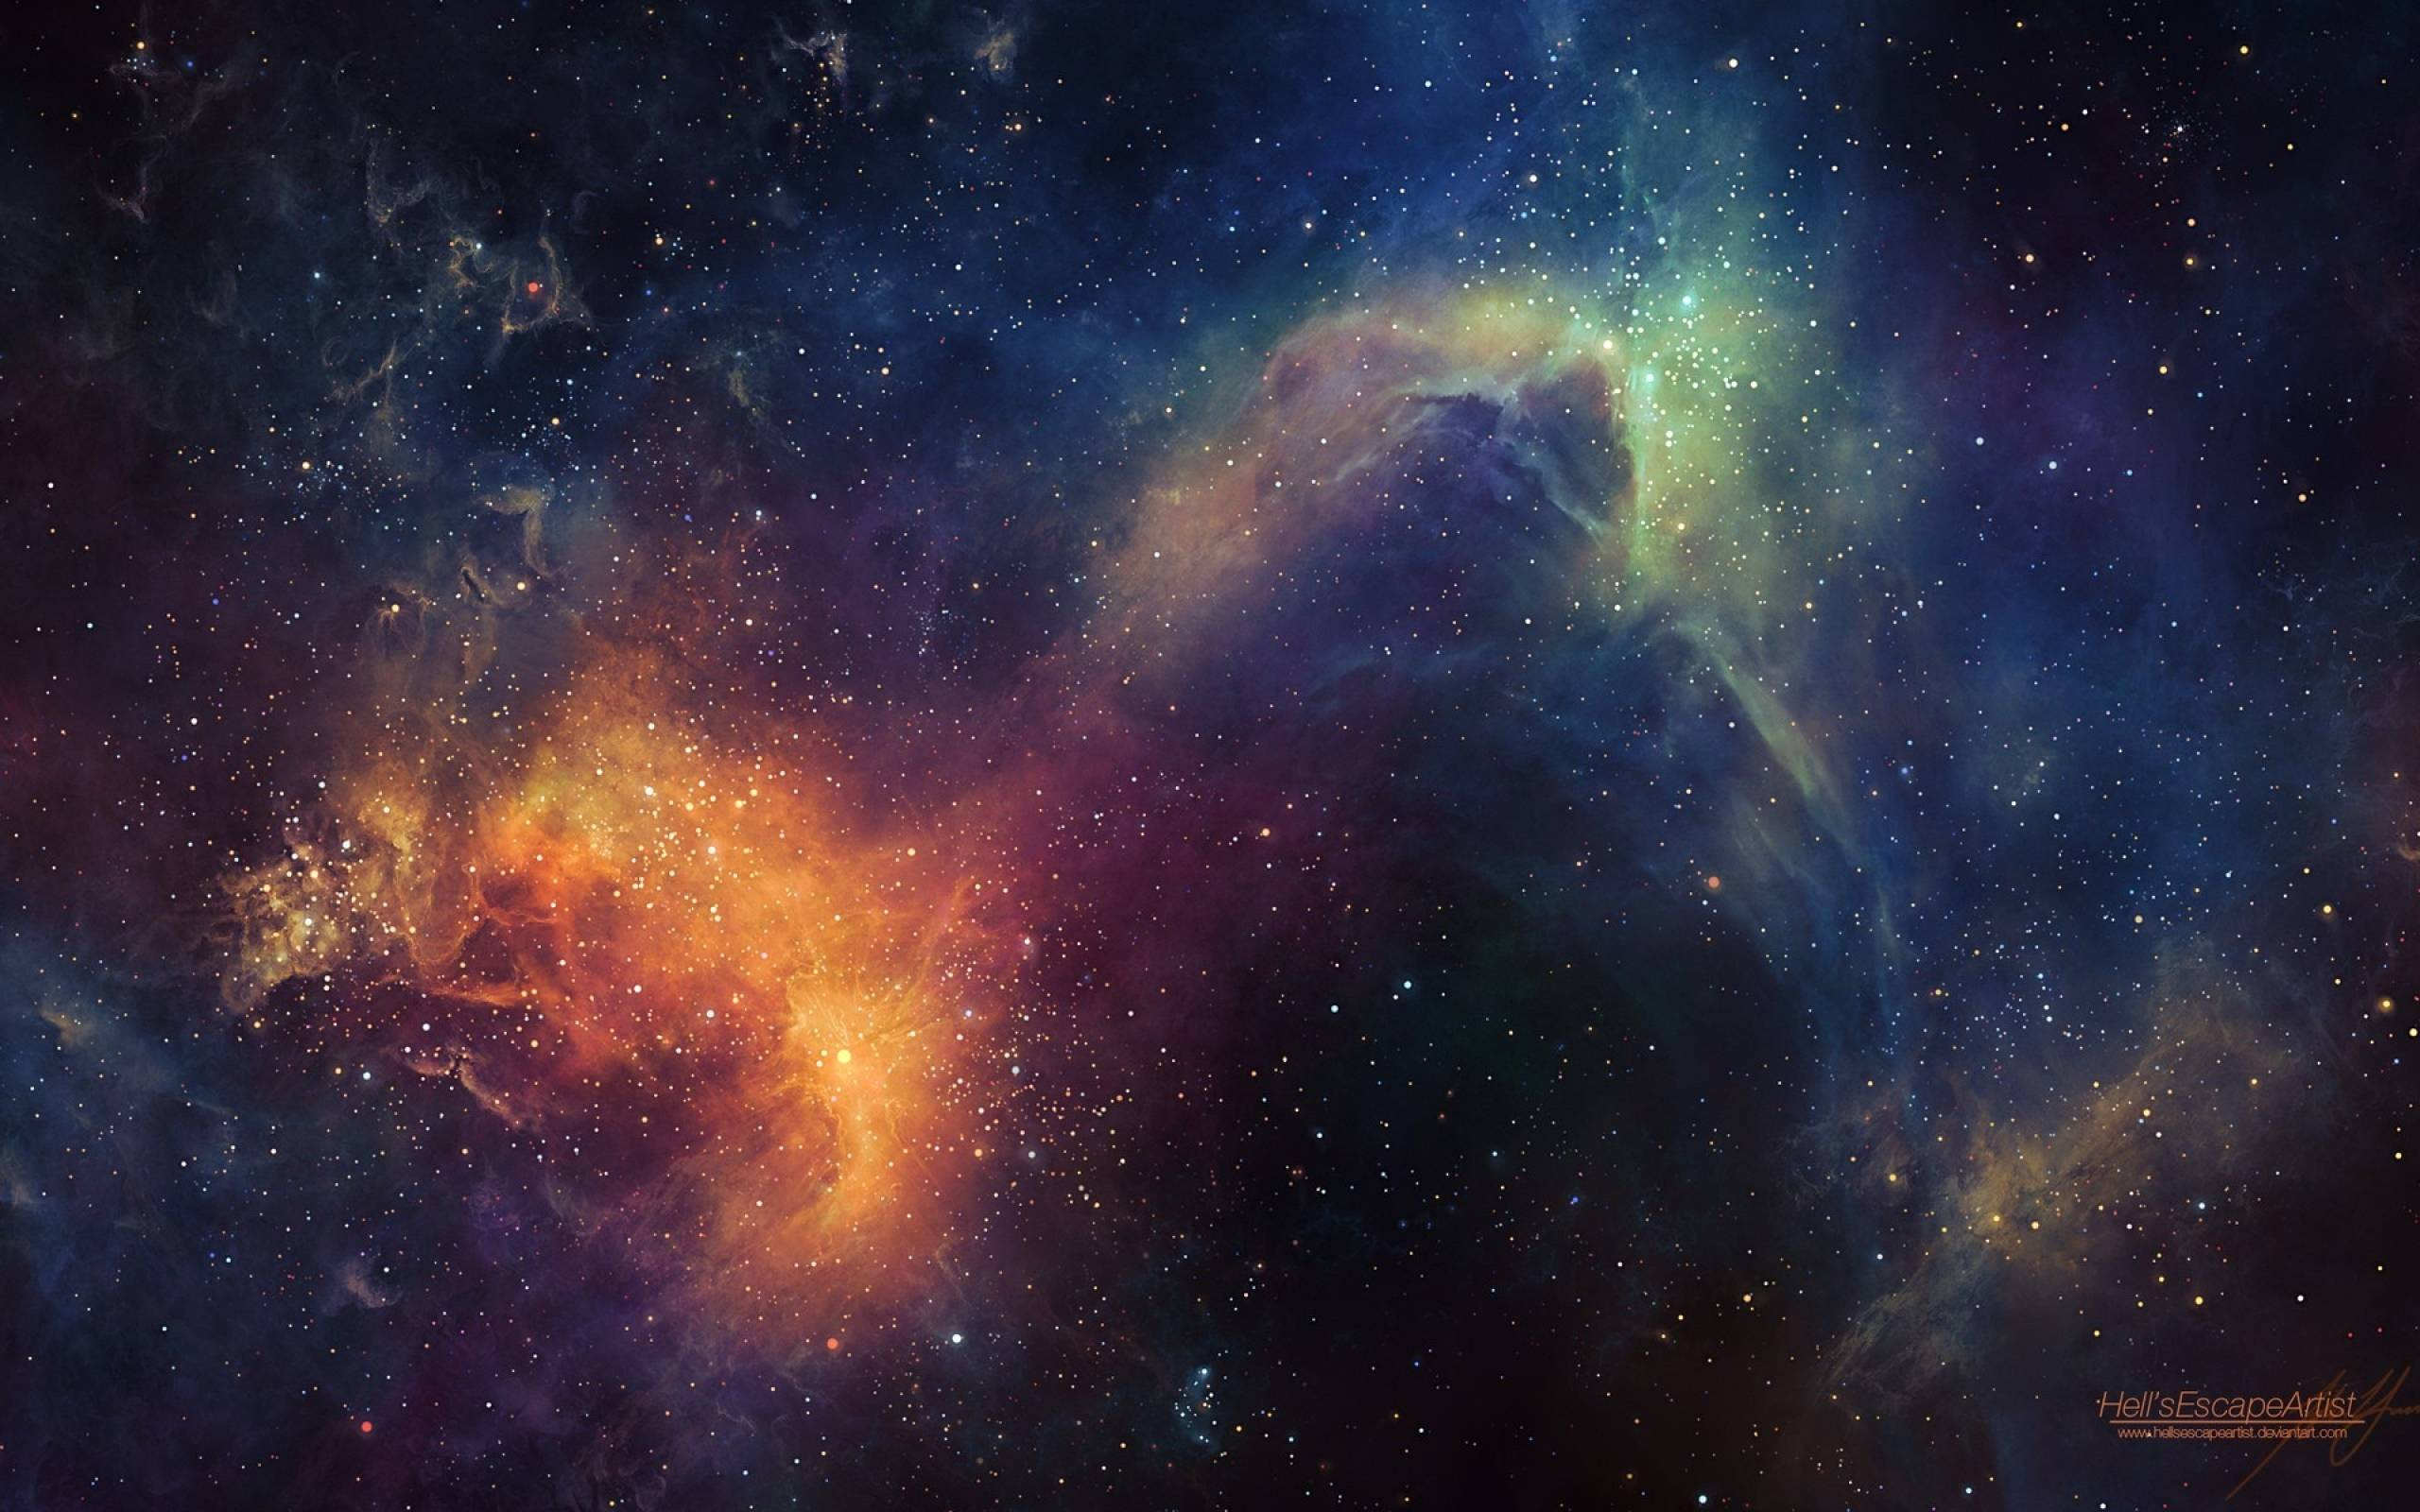 Live Space Wallpaper For Computer: Backgrounds Space